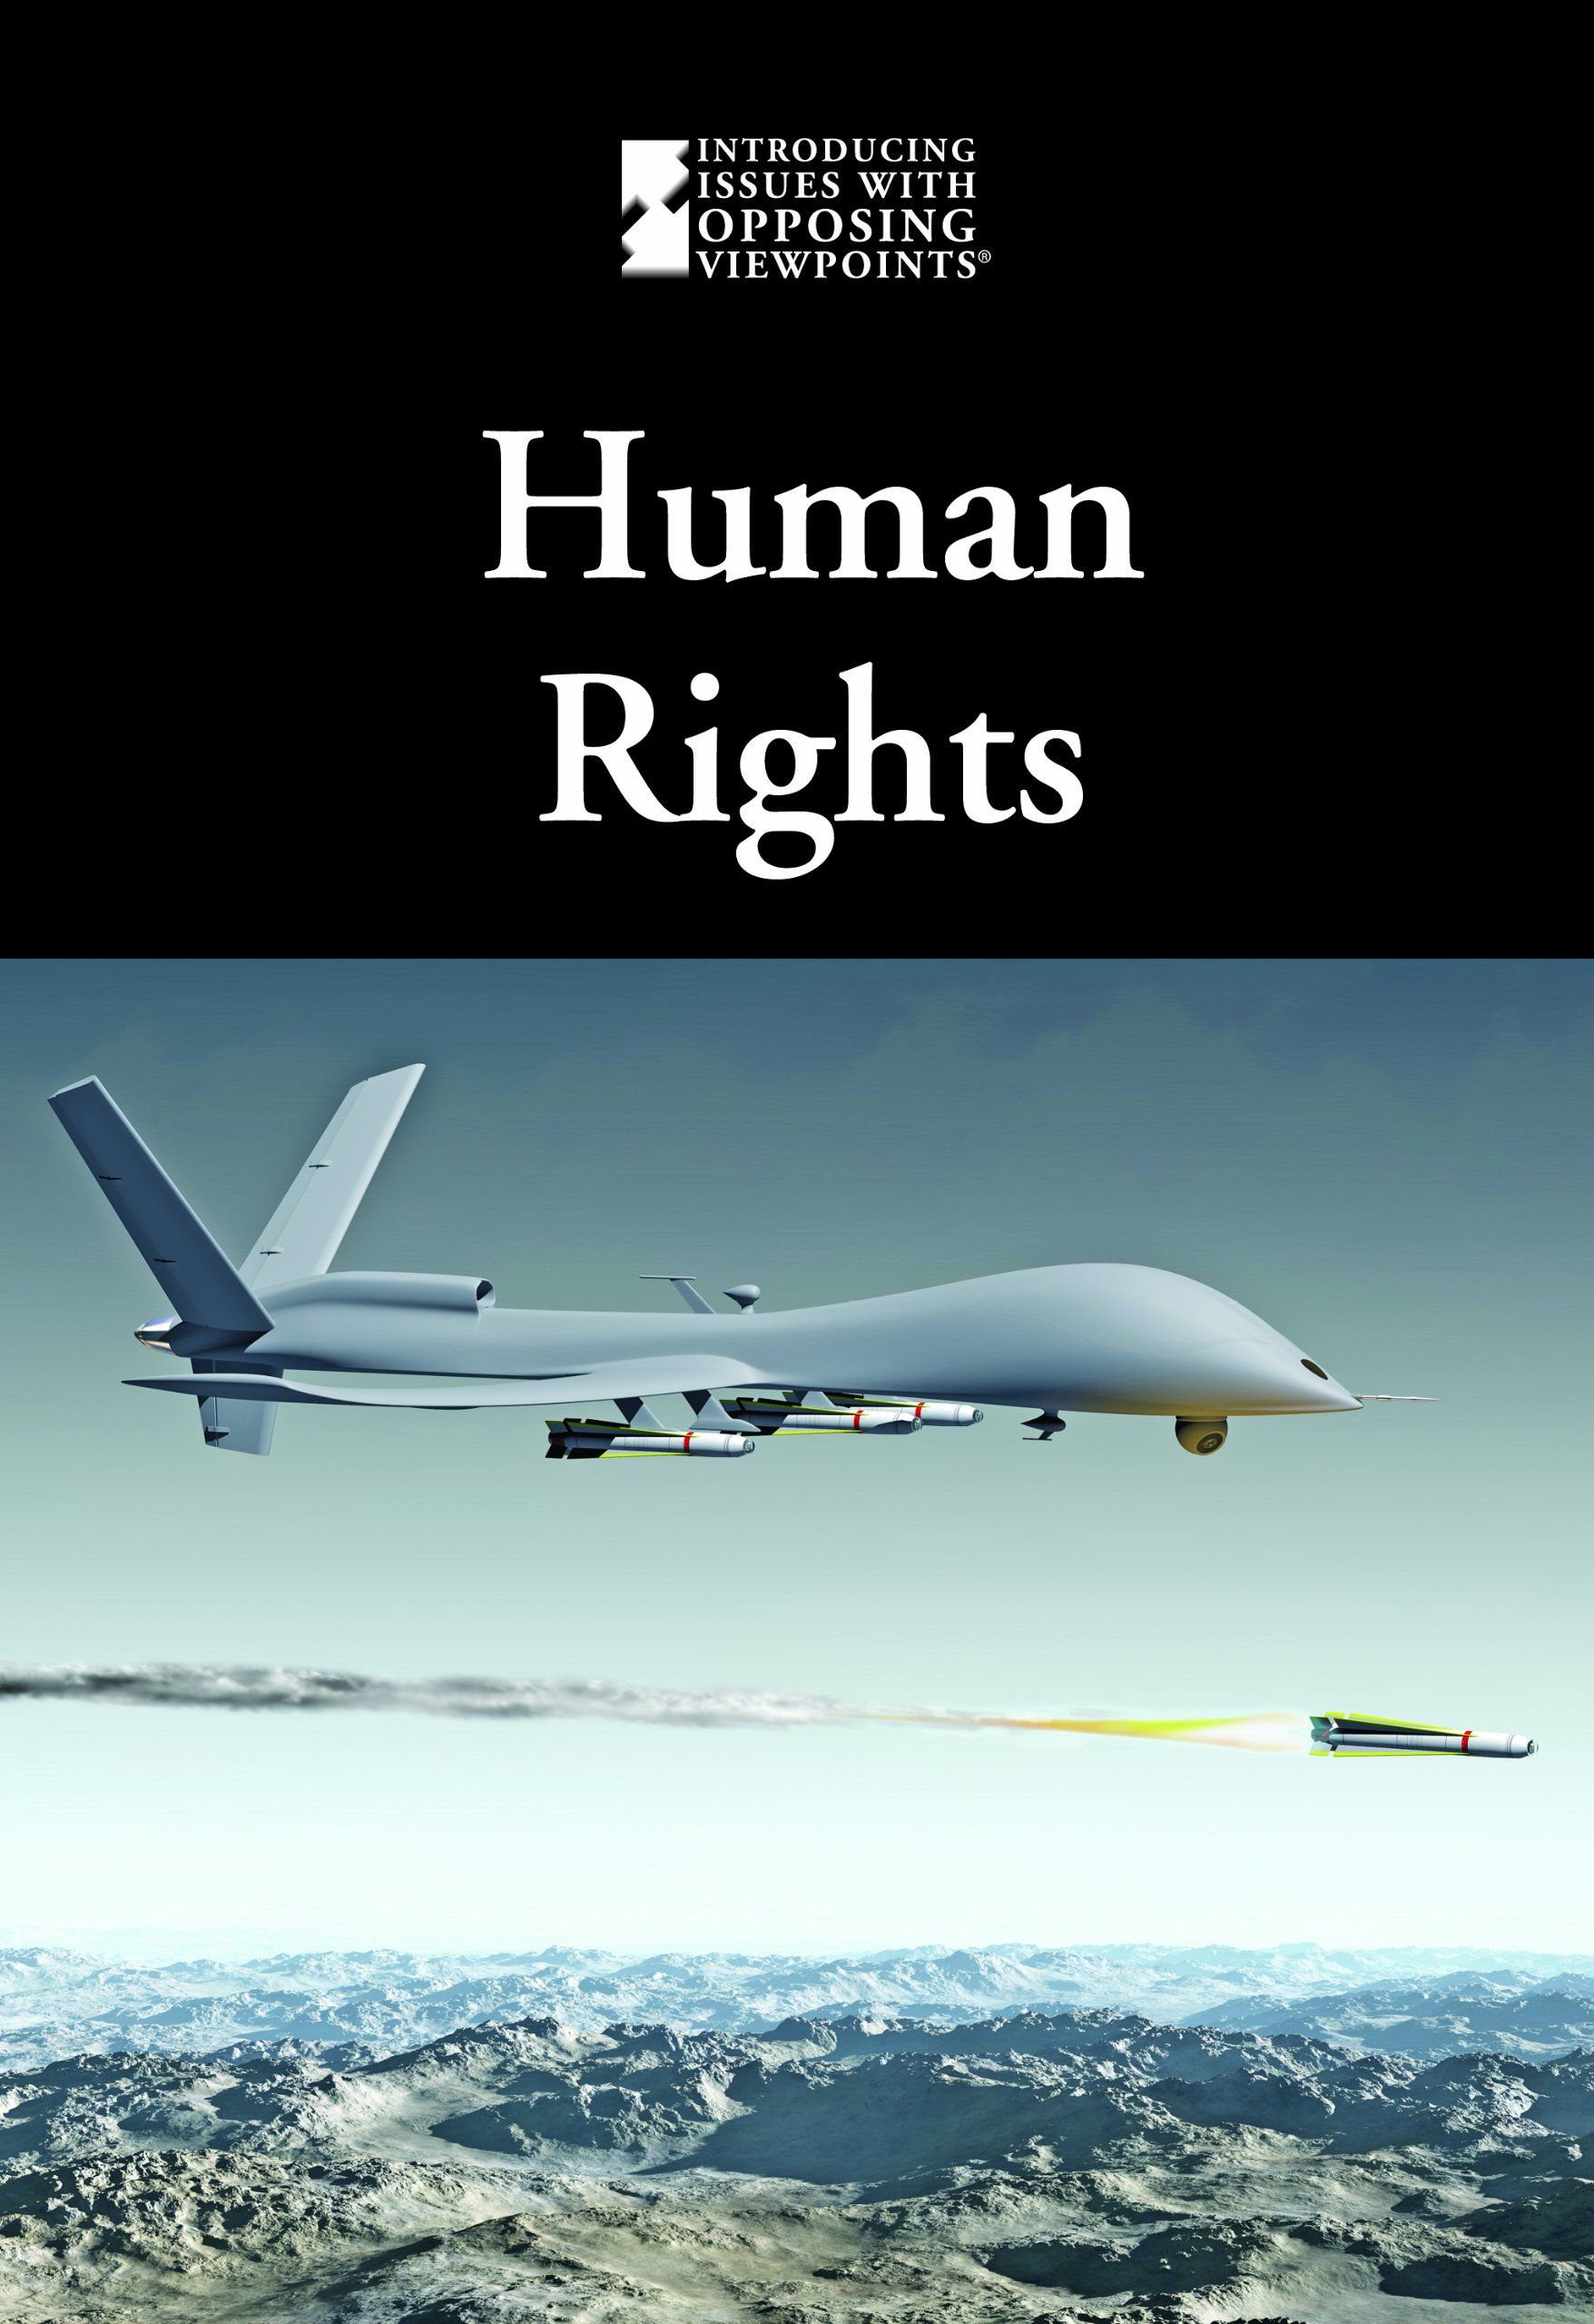 Human Rights (Introducing Issues With Opposing Viewpoints)